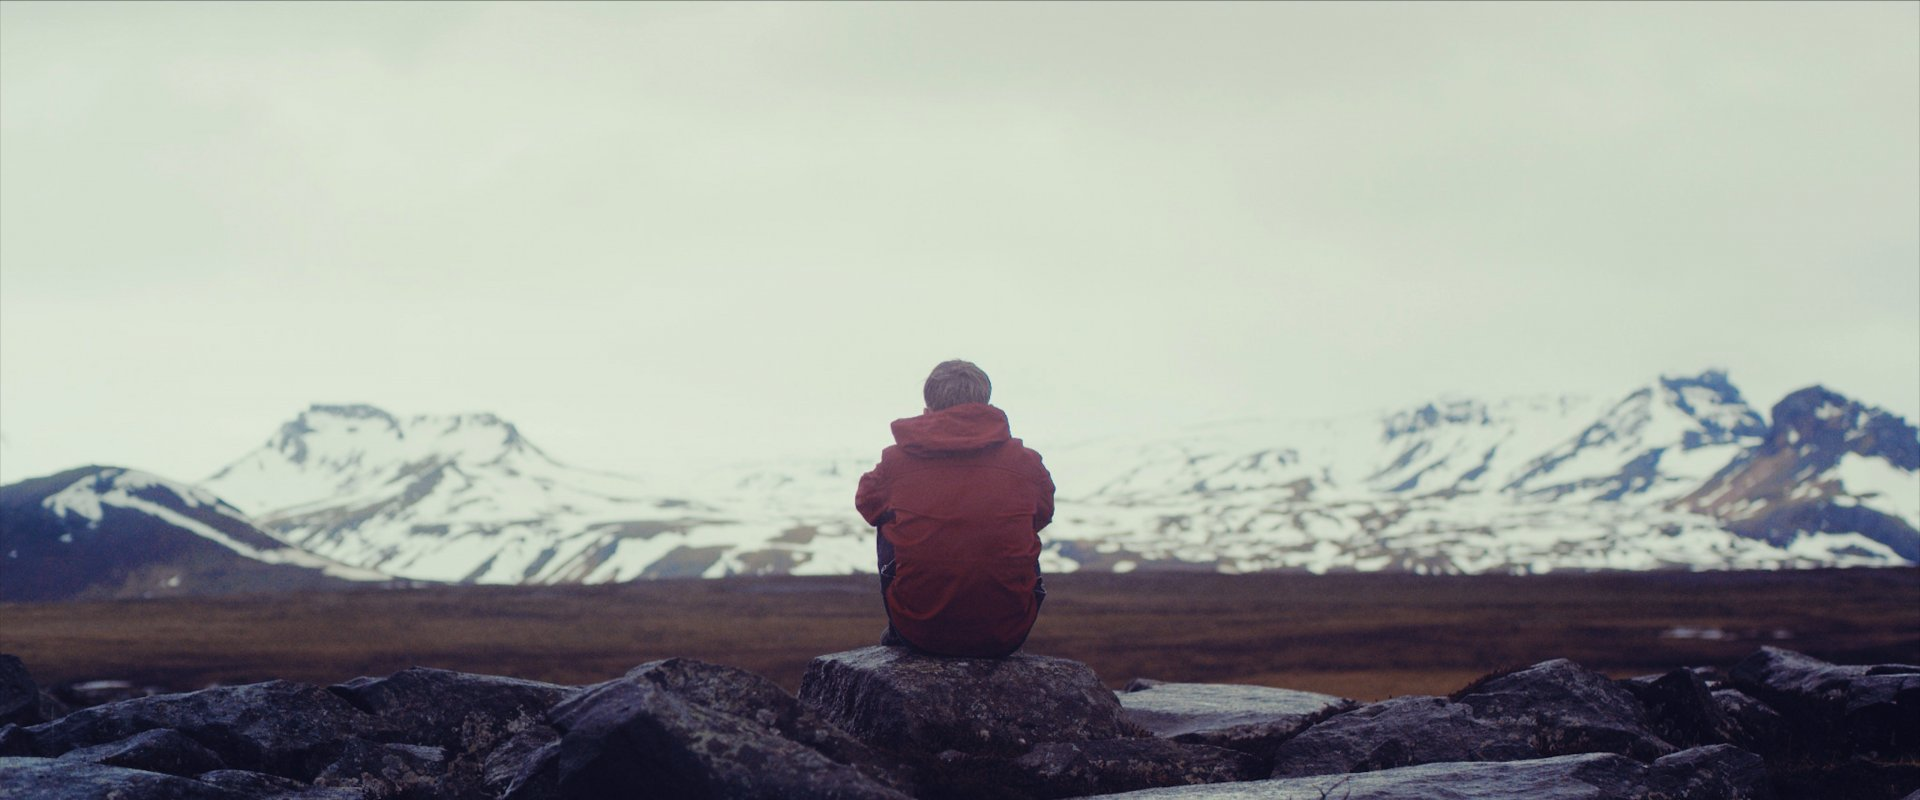 man sitting on a rock in front of wide frozen open views